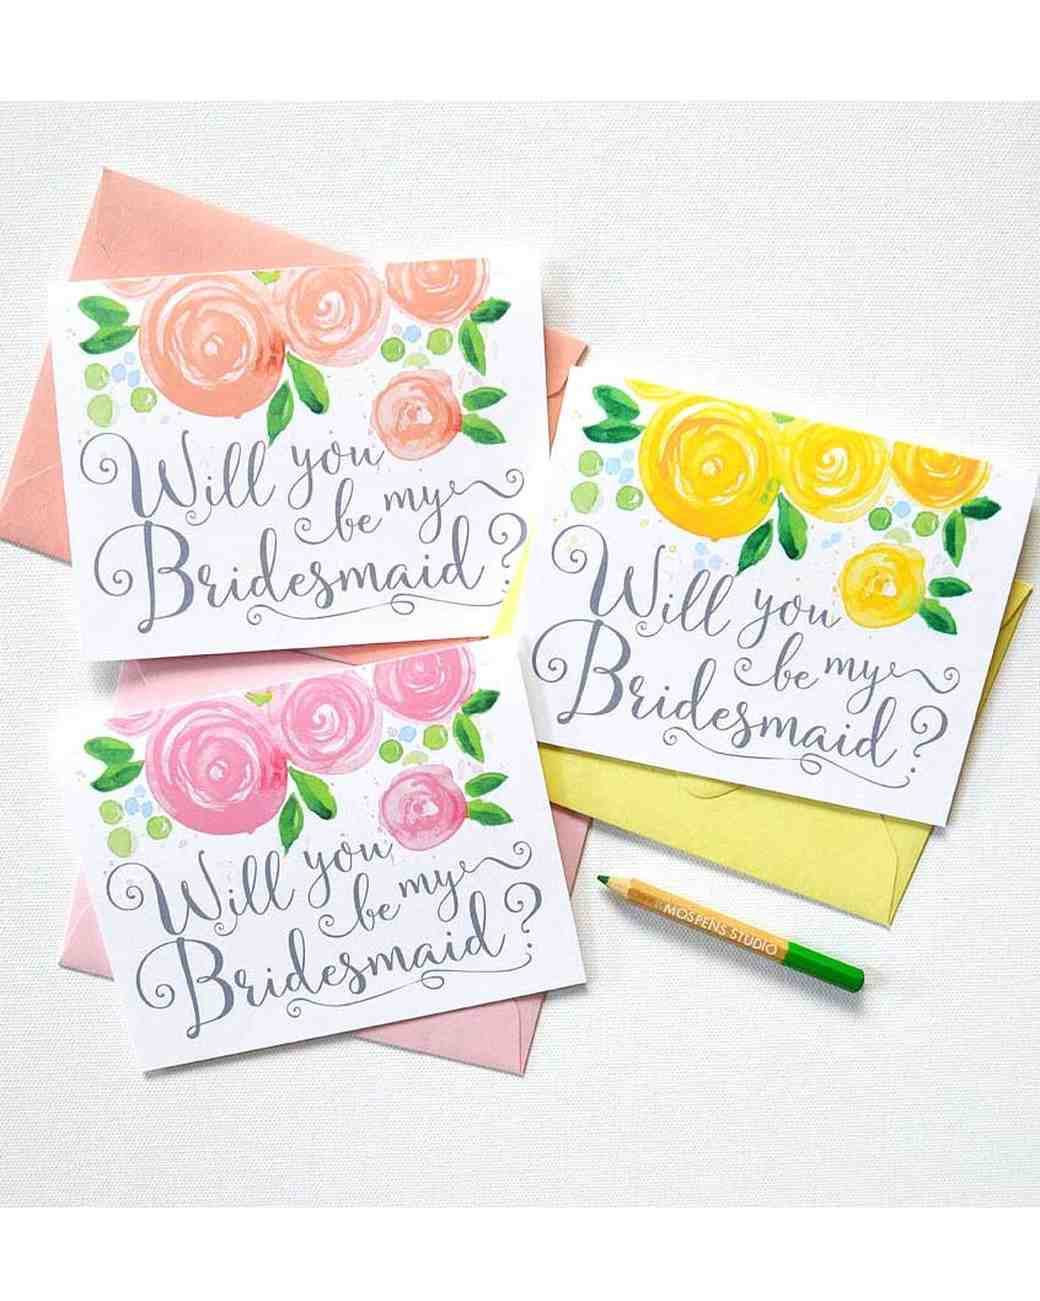 mospens-studio-will-you-be-my-bridesmaid-card-0216.jpg